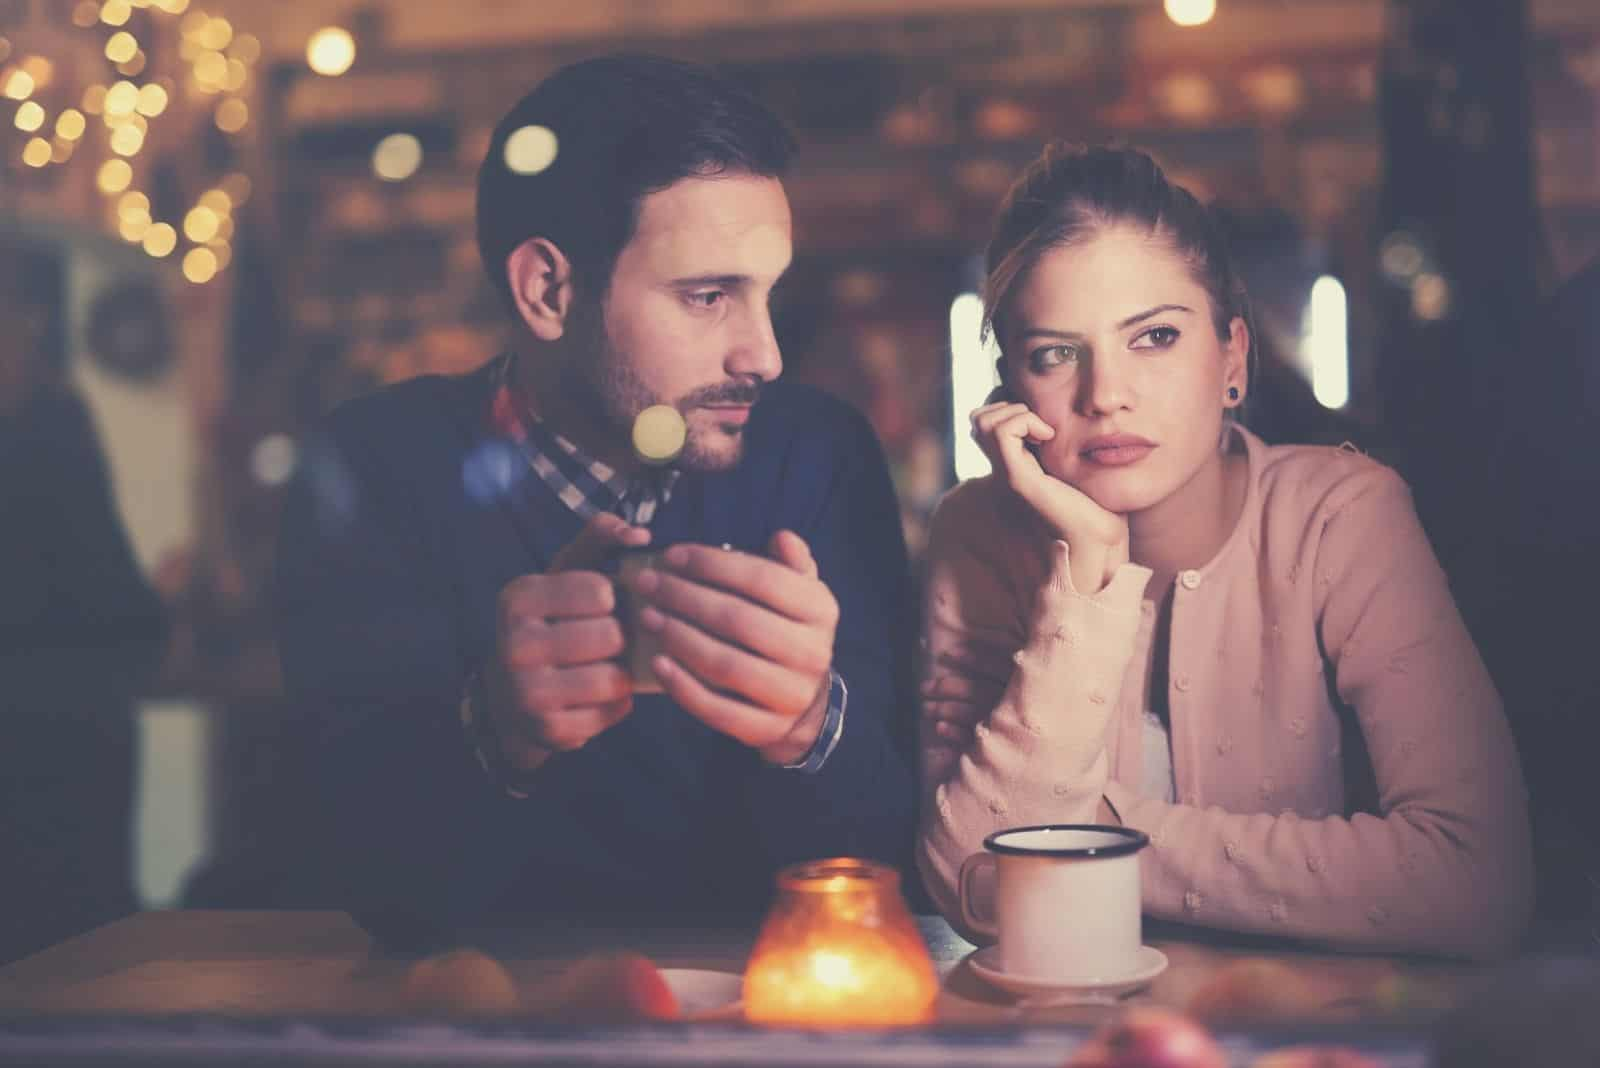 sad couple having conflict inside a restaurant while having a dinner date